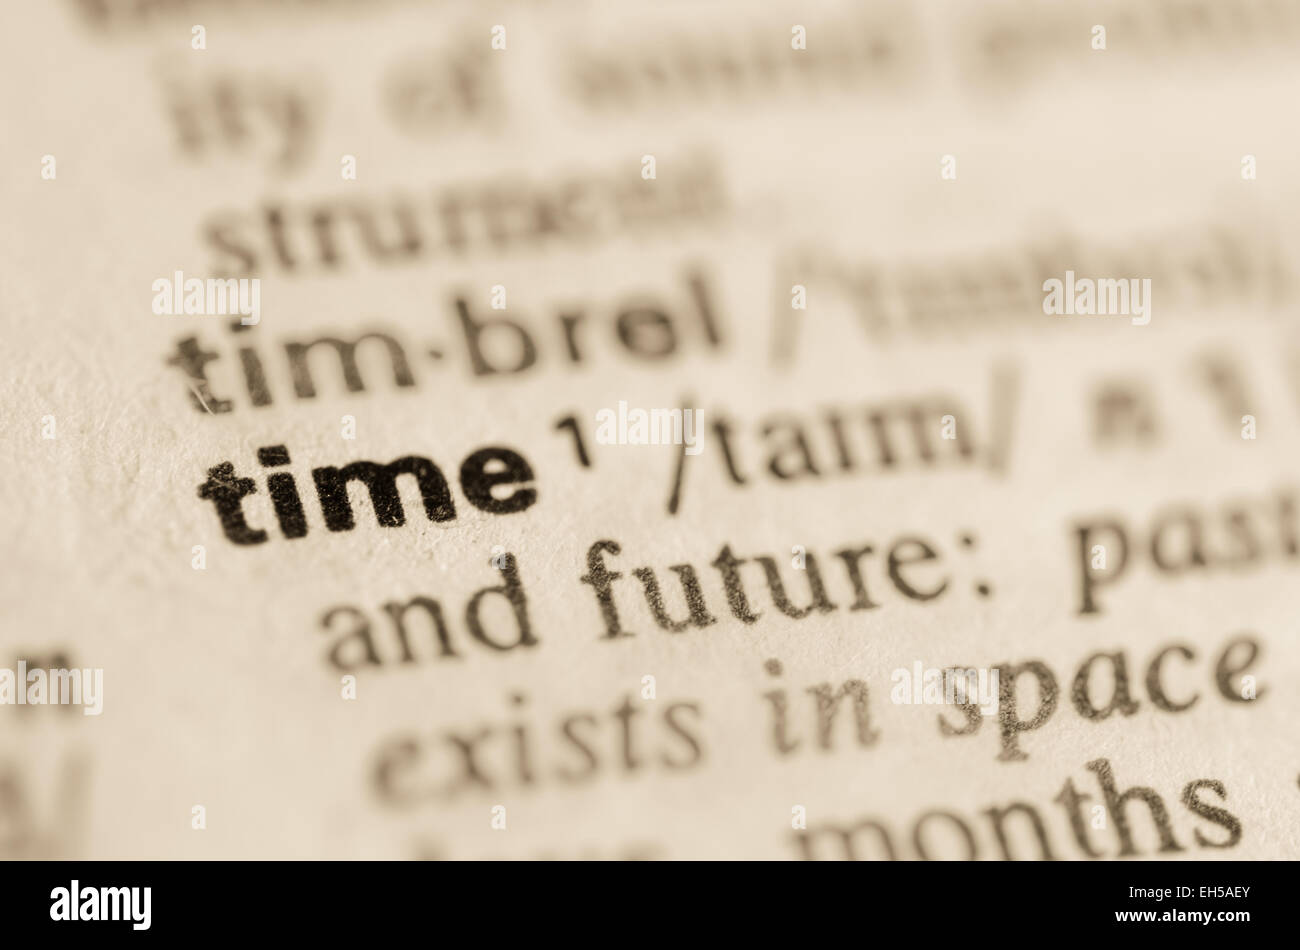 Definition of word time in dictionary - Stock Image